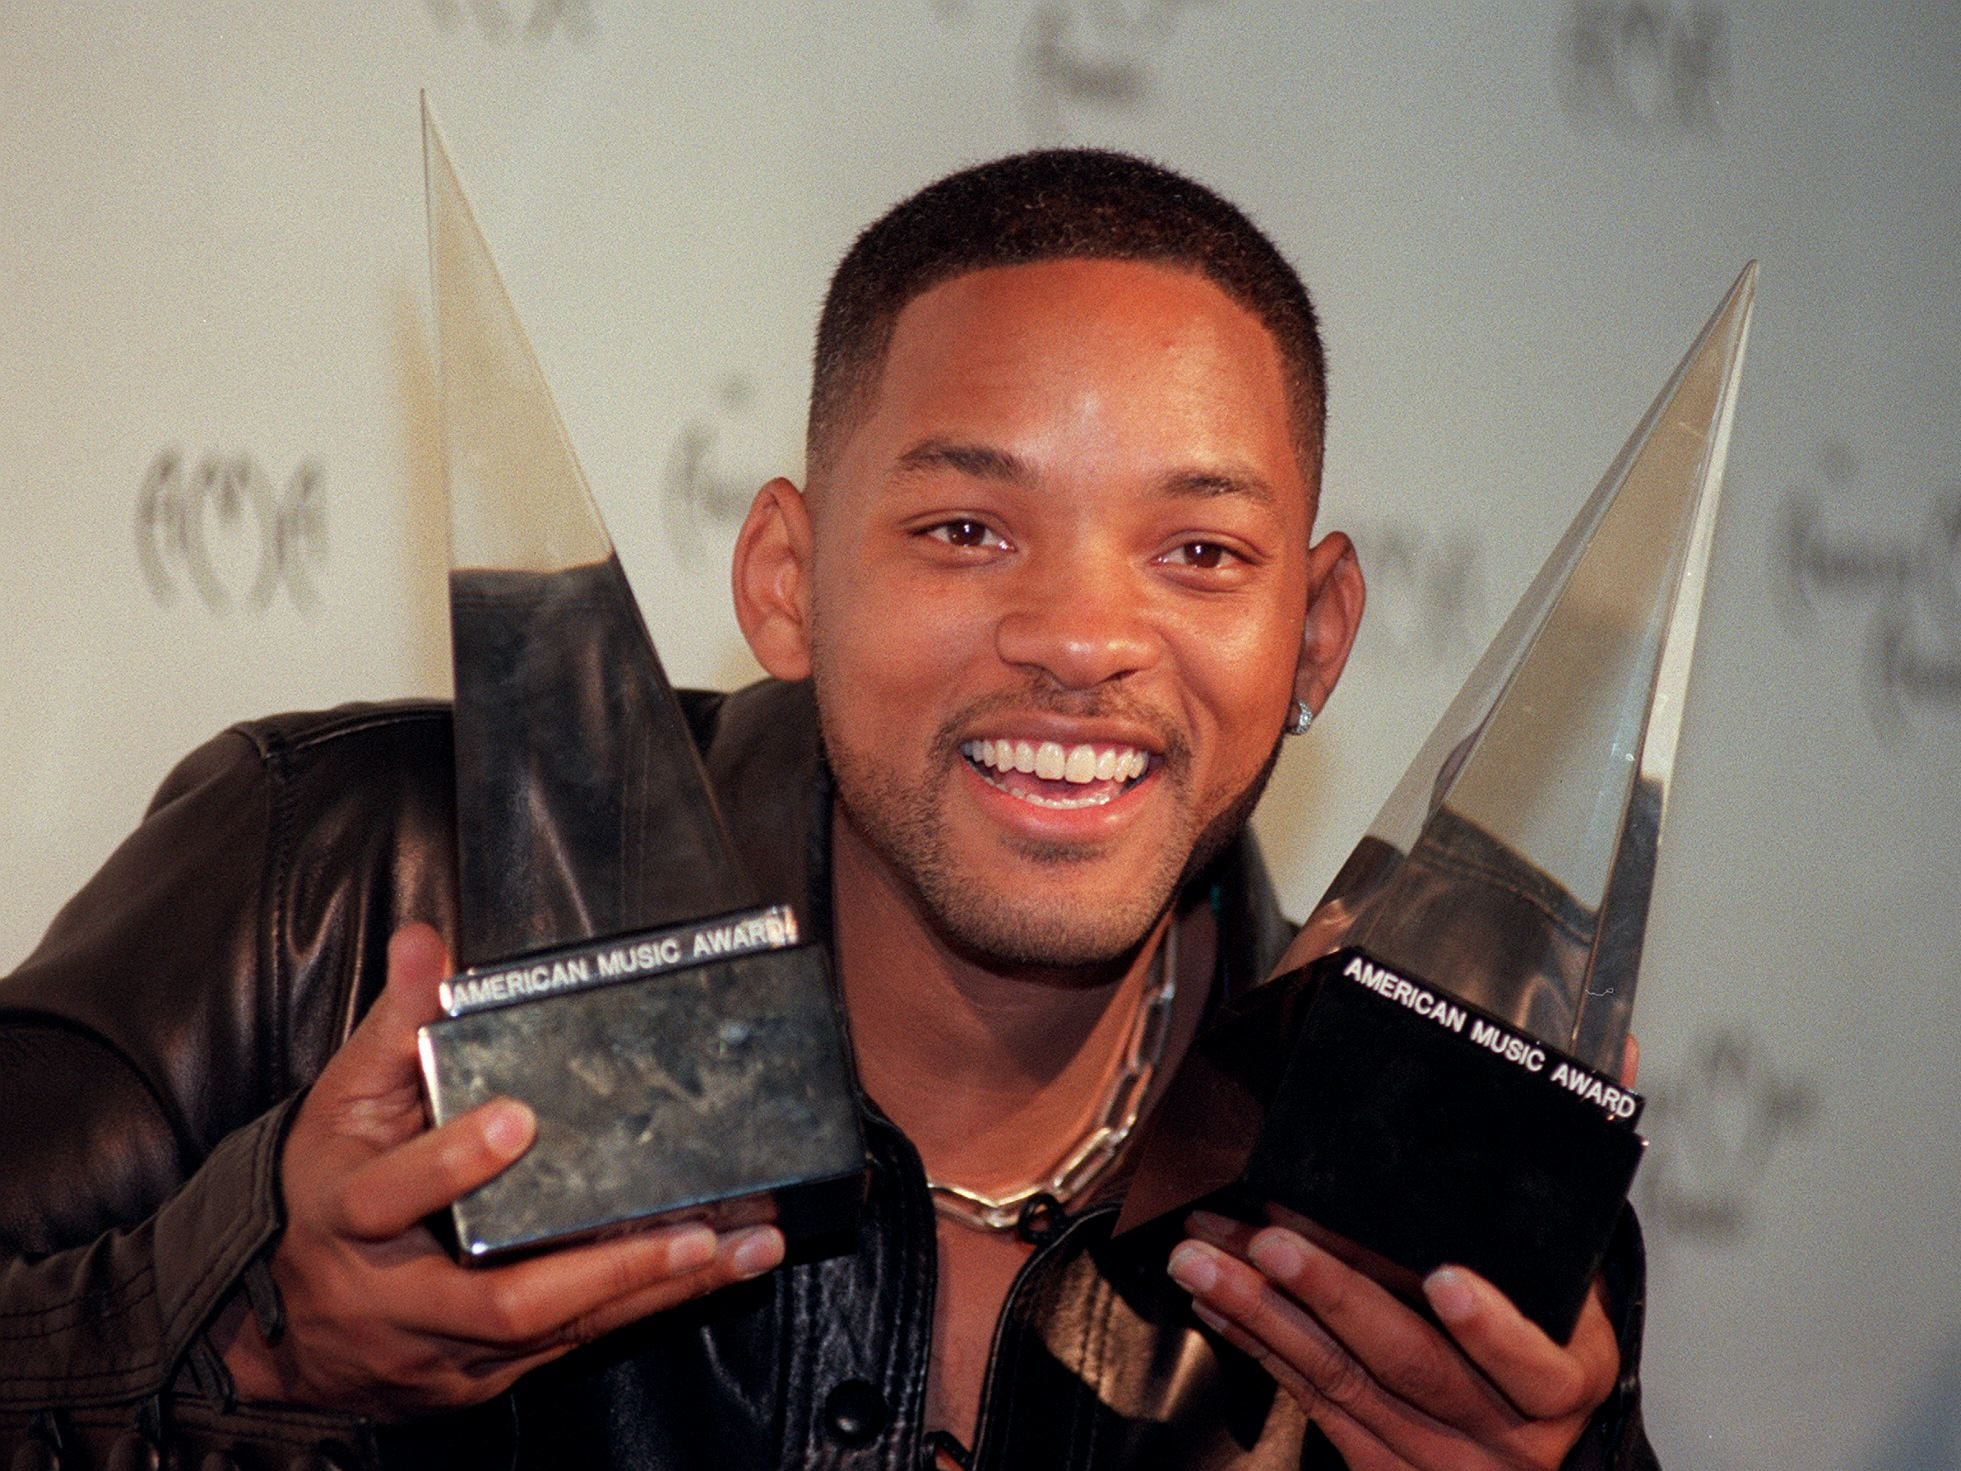 Actor and Recording star Will Smith holds up two of the three awards he won at The American Music Awards at the Shrine Auditorium in Los Angeles, Calif. on 11 Jan. 11, 1999. Smith won awards for Pop Rock Favorite Album, Soul, Rhythm and Blues Favorite Album, and Favorite Male Artist.